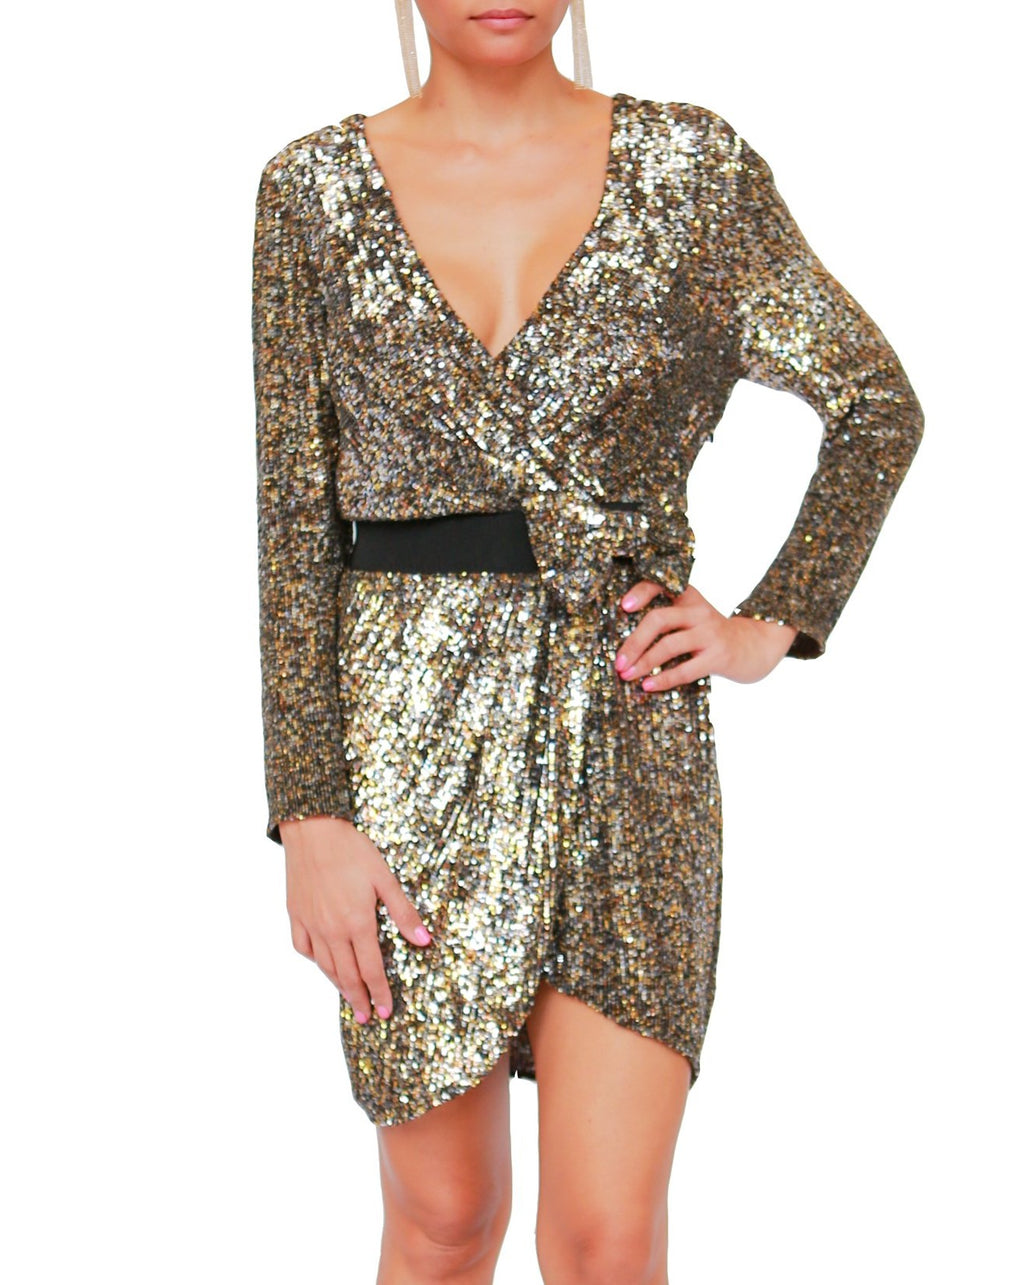 Sequin Wrap Dress with Bow